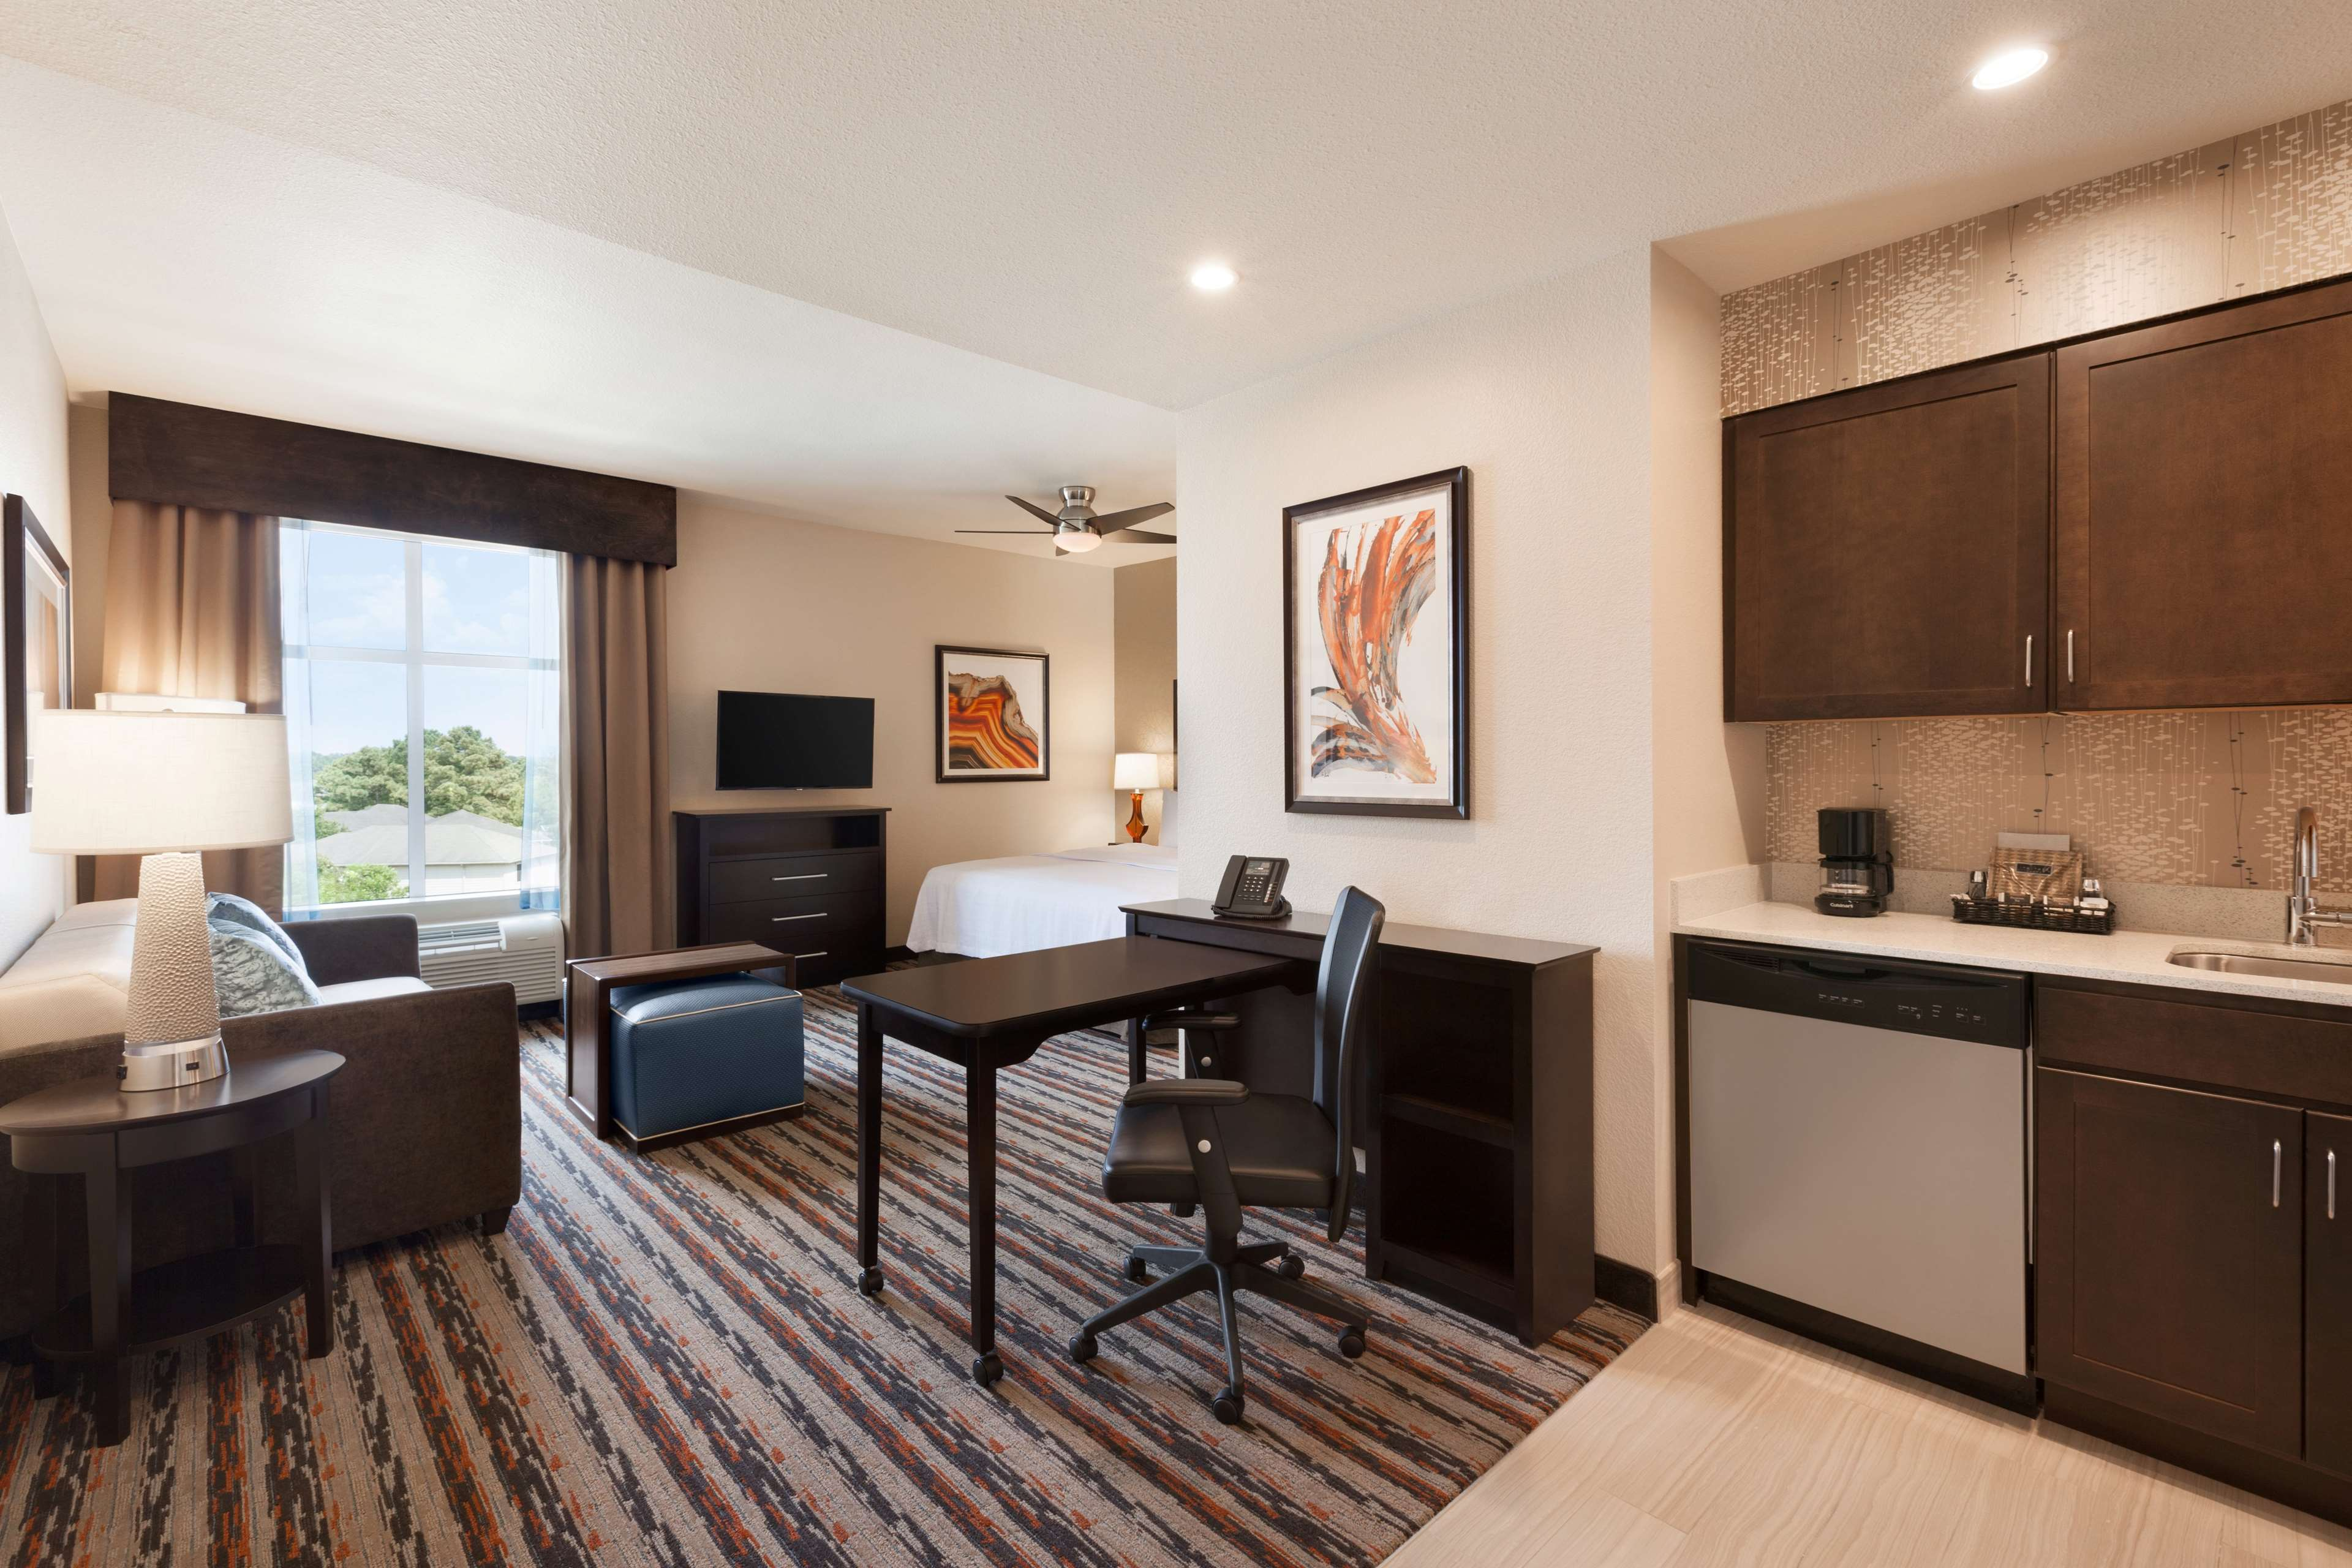 Homewood Suites by Hilton North Houston/Spring image 21